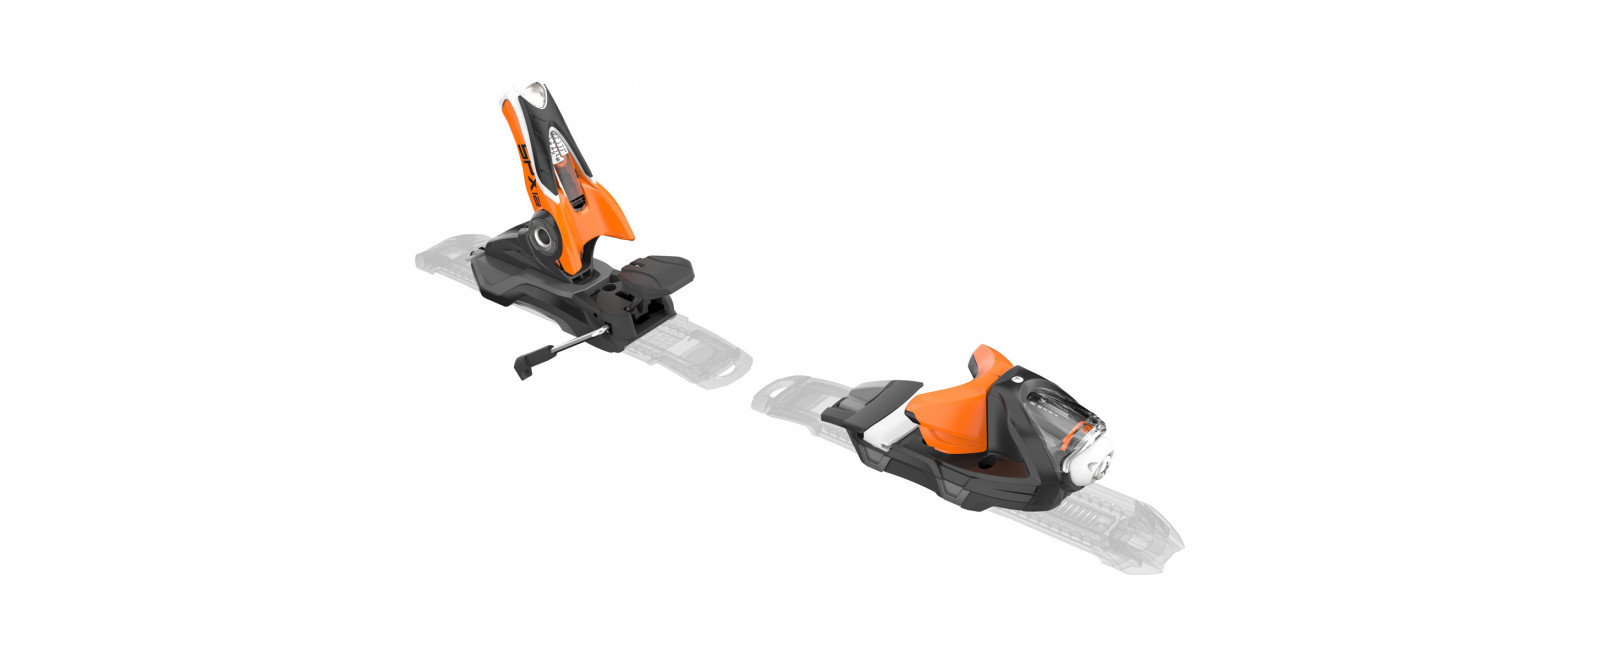 bindings SPX 12 KONECT DUAL WTR B80 BLACK ORANGE